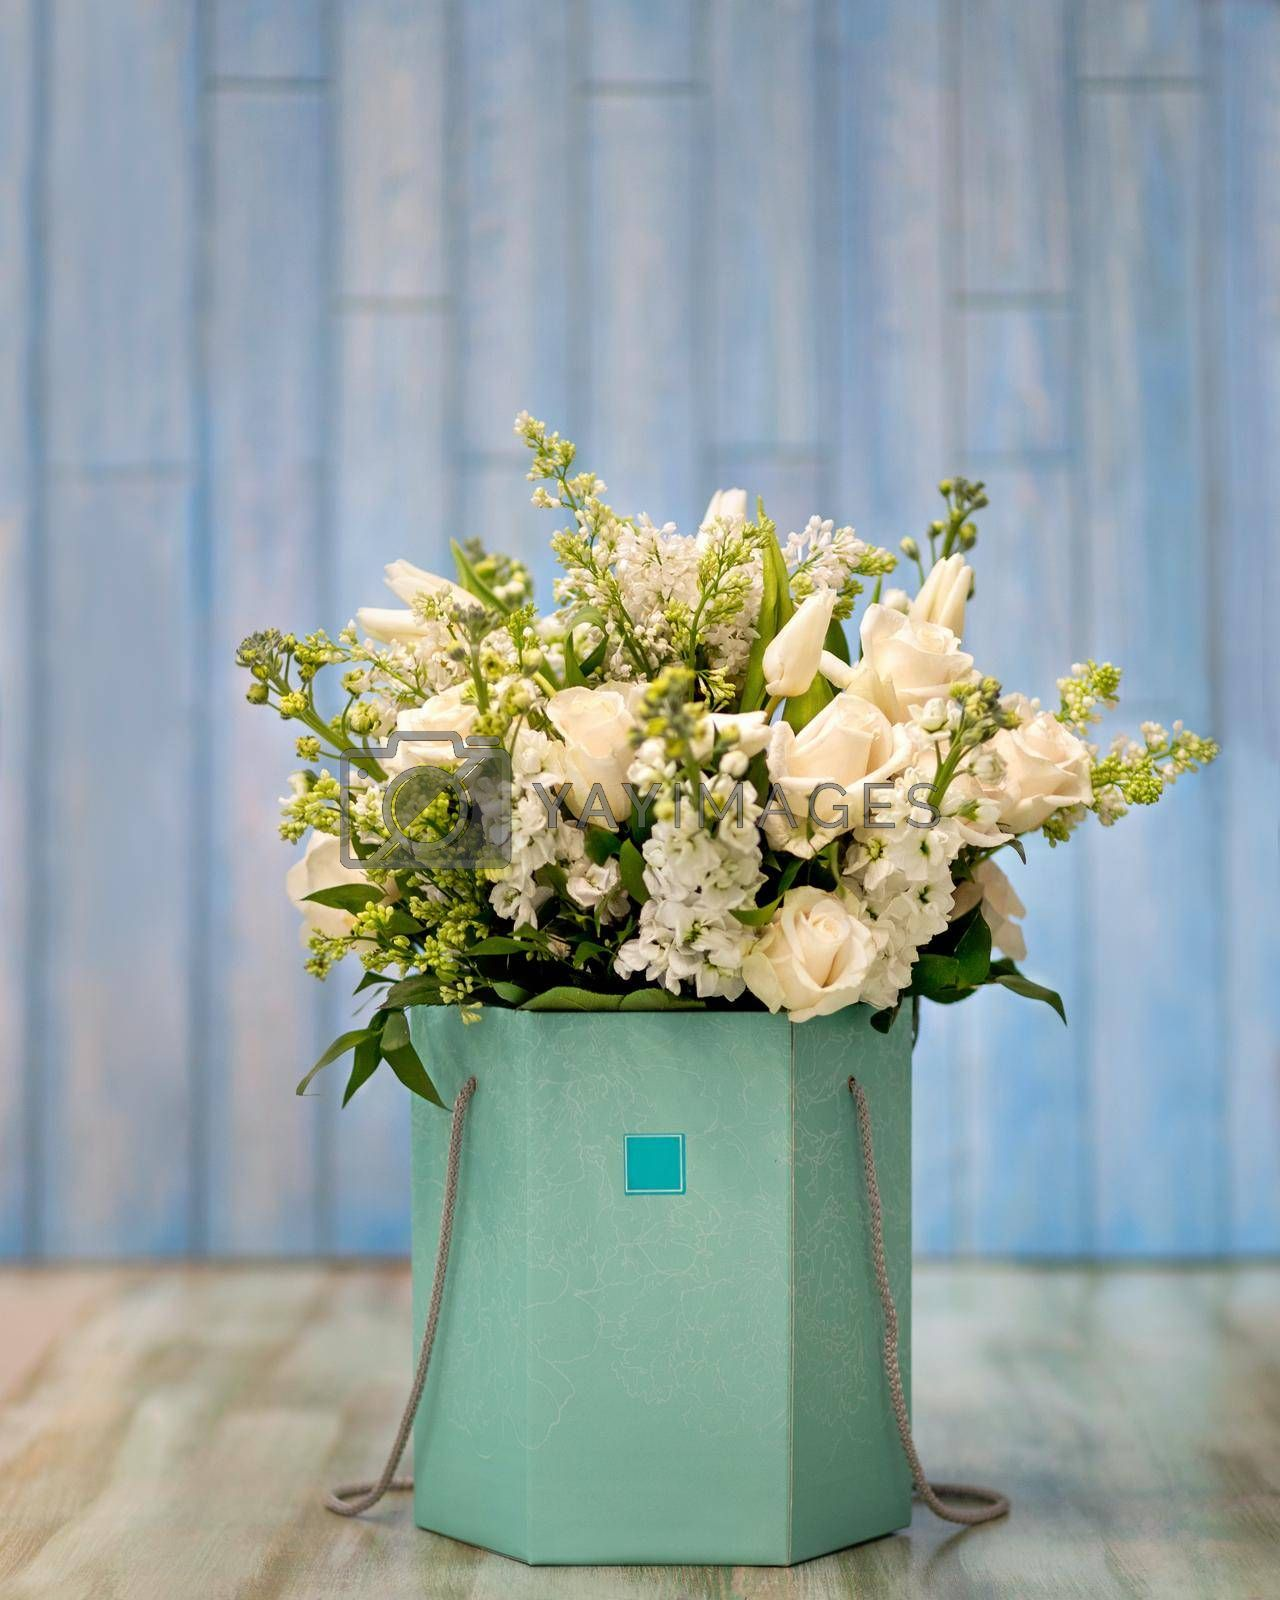 Beautiful white flower bouquet in the box